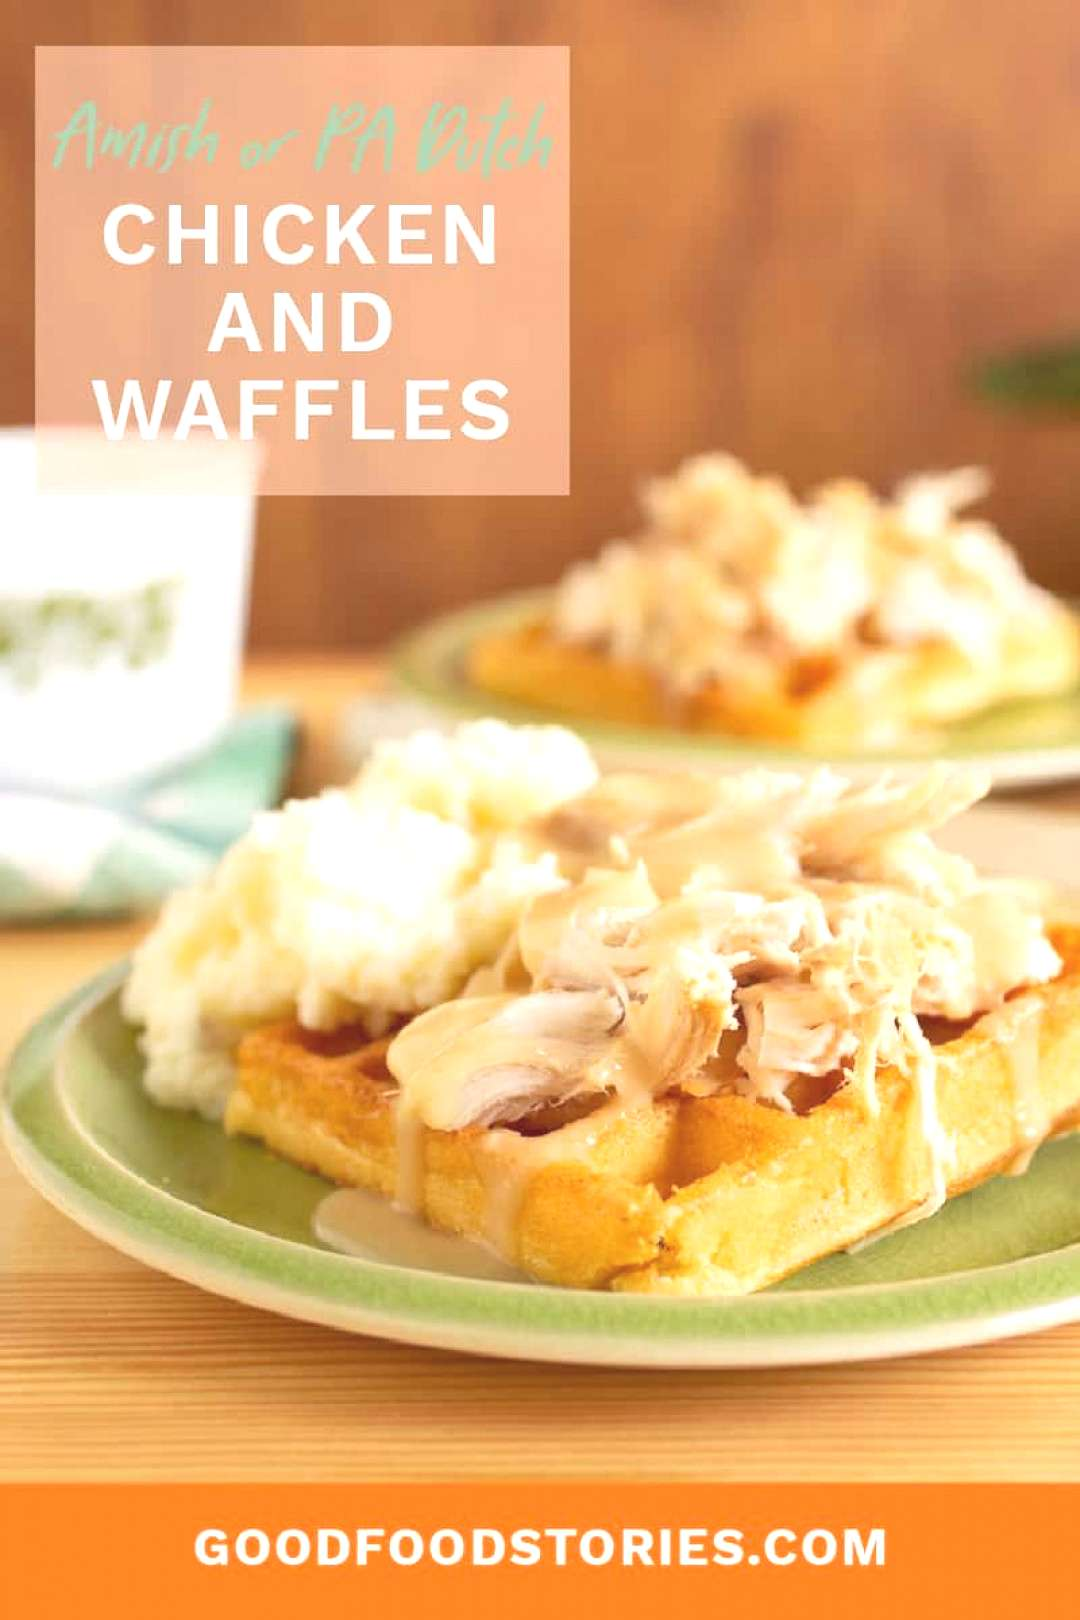 Amish chicken and waffles, also known as PA Dutch chicken and waffles, are made with roast chicken